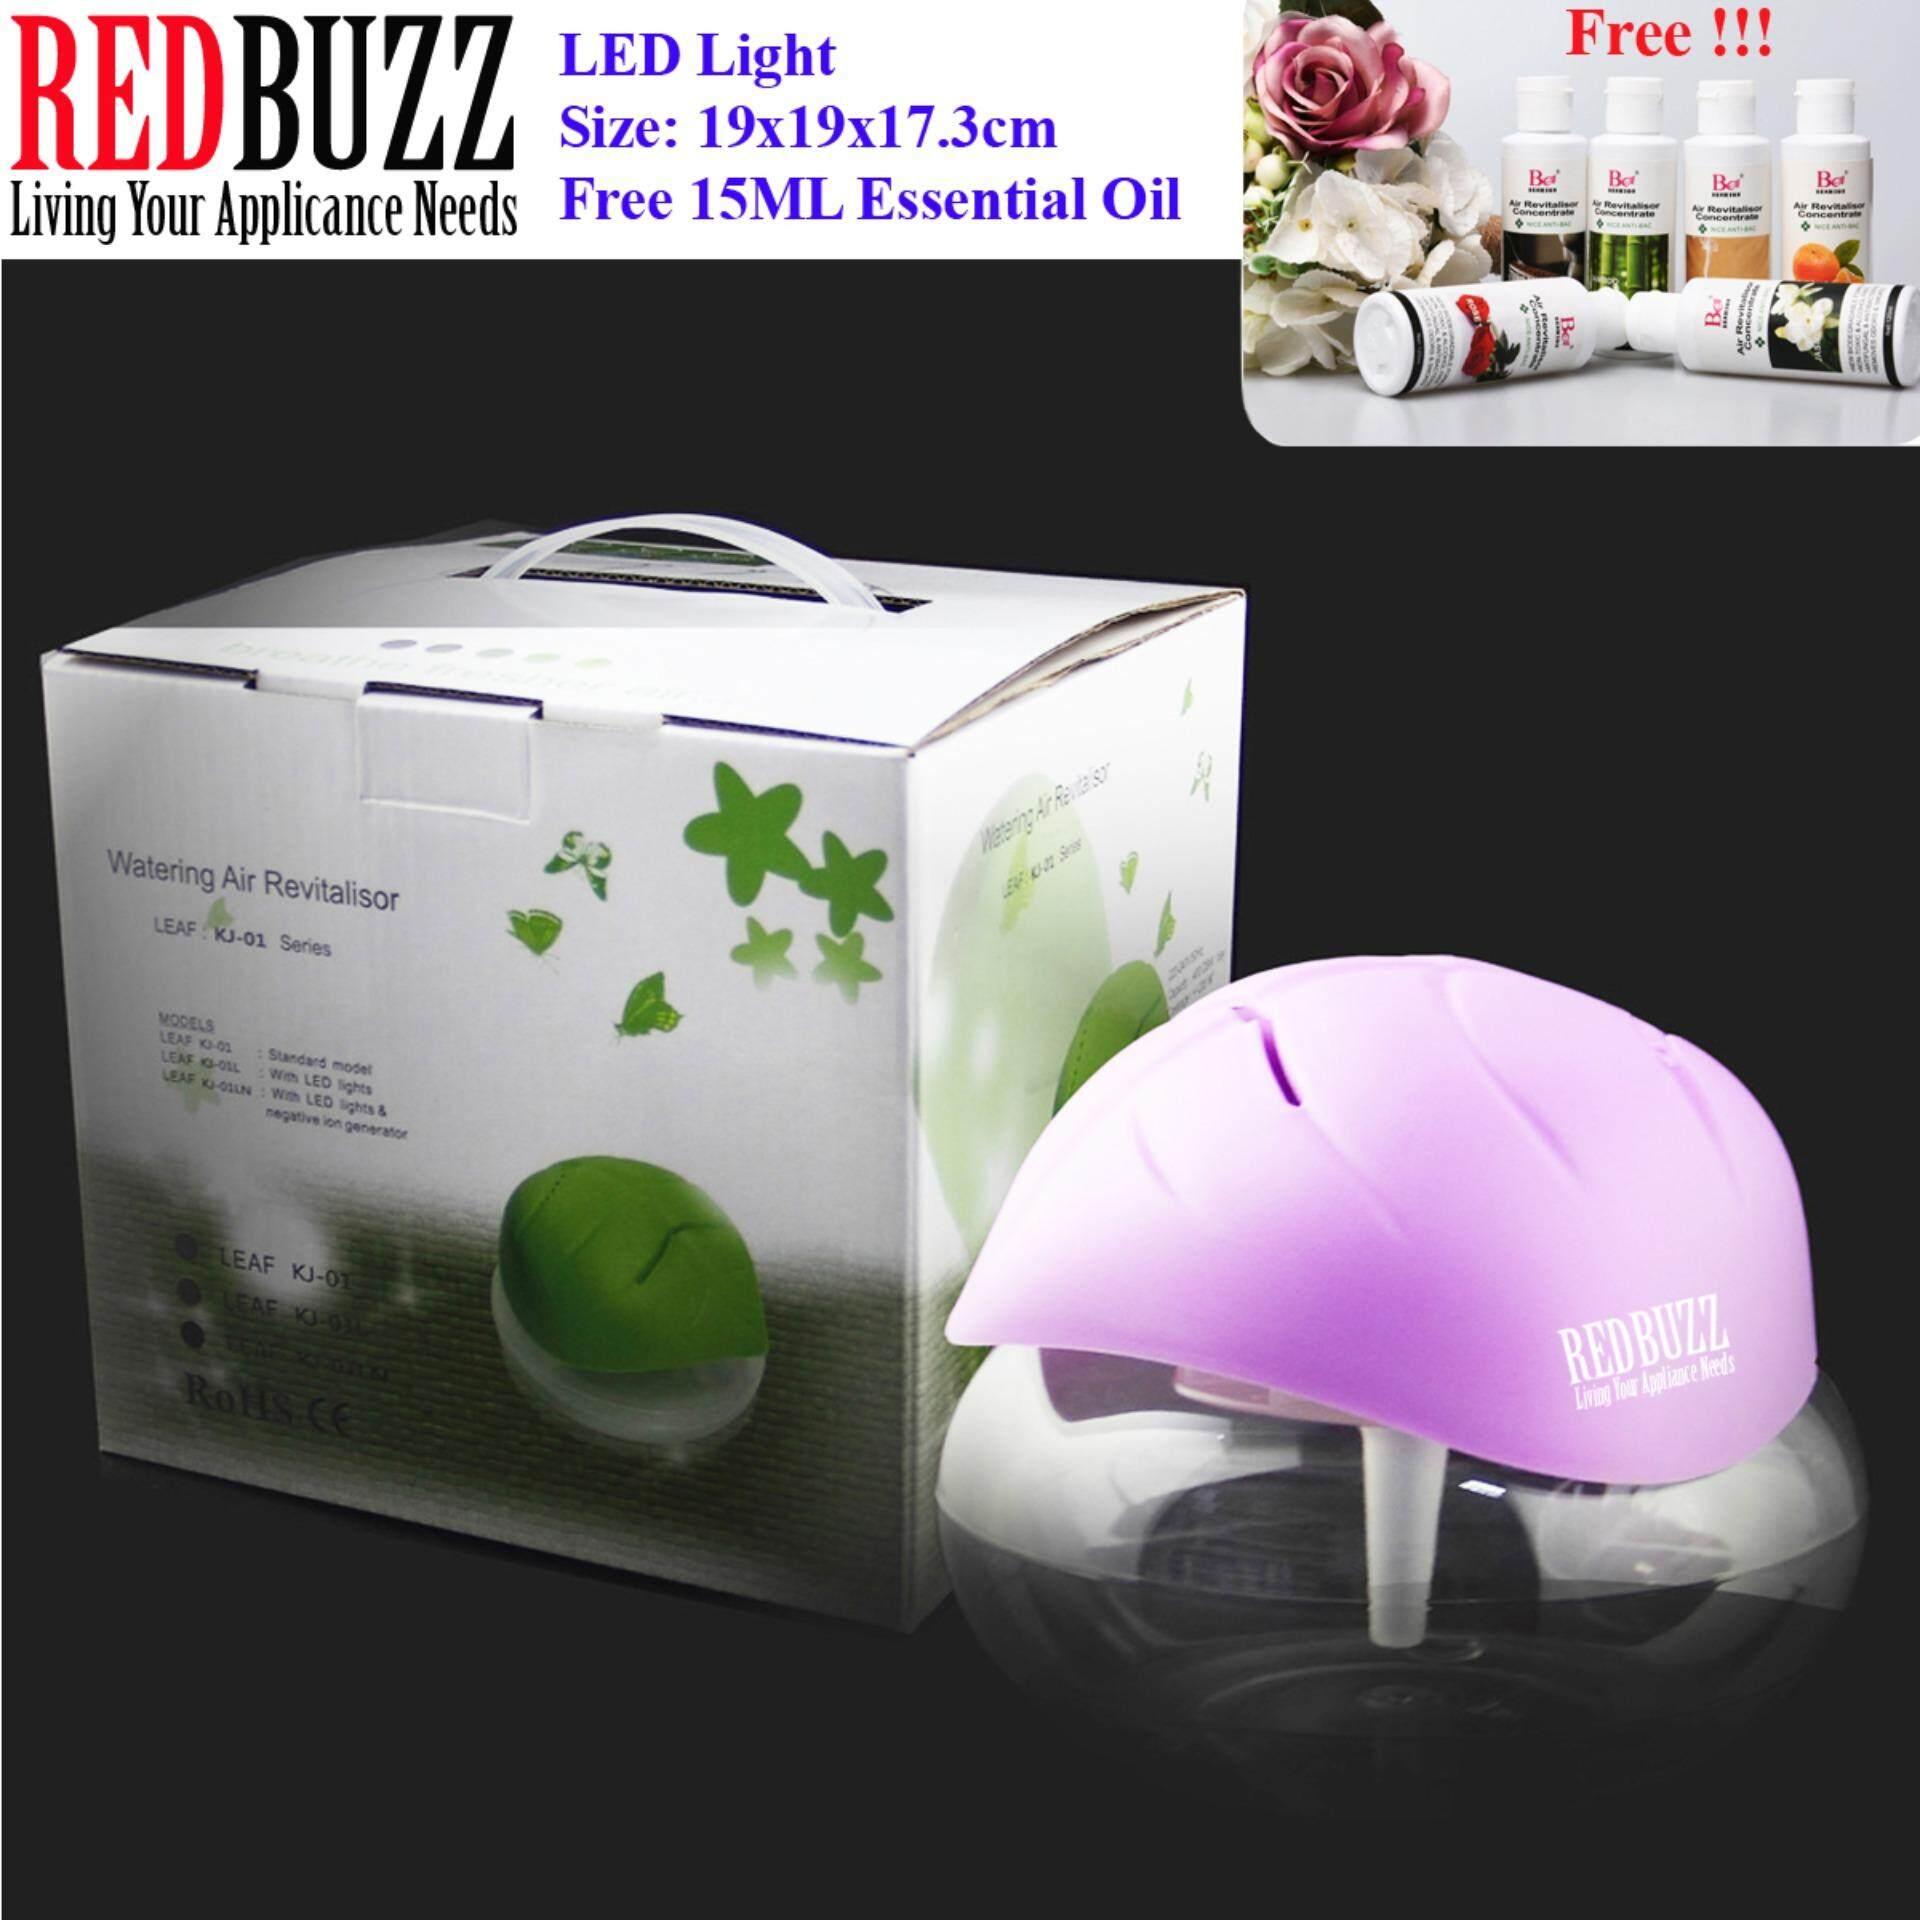 REDBUZZ Watering Air Revitalisor Fresh Air Purifier Aroma Diffuser with LED light + Free 15ML Essential Oil (Purple Color)